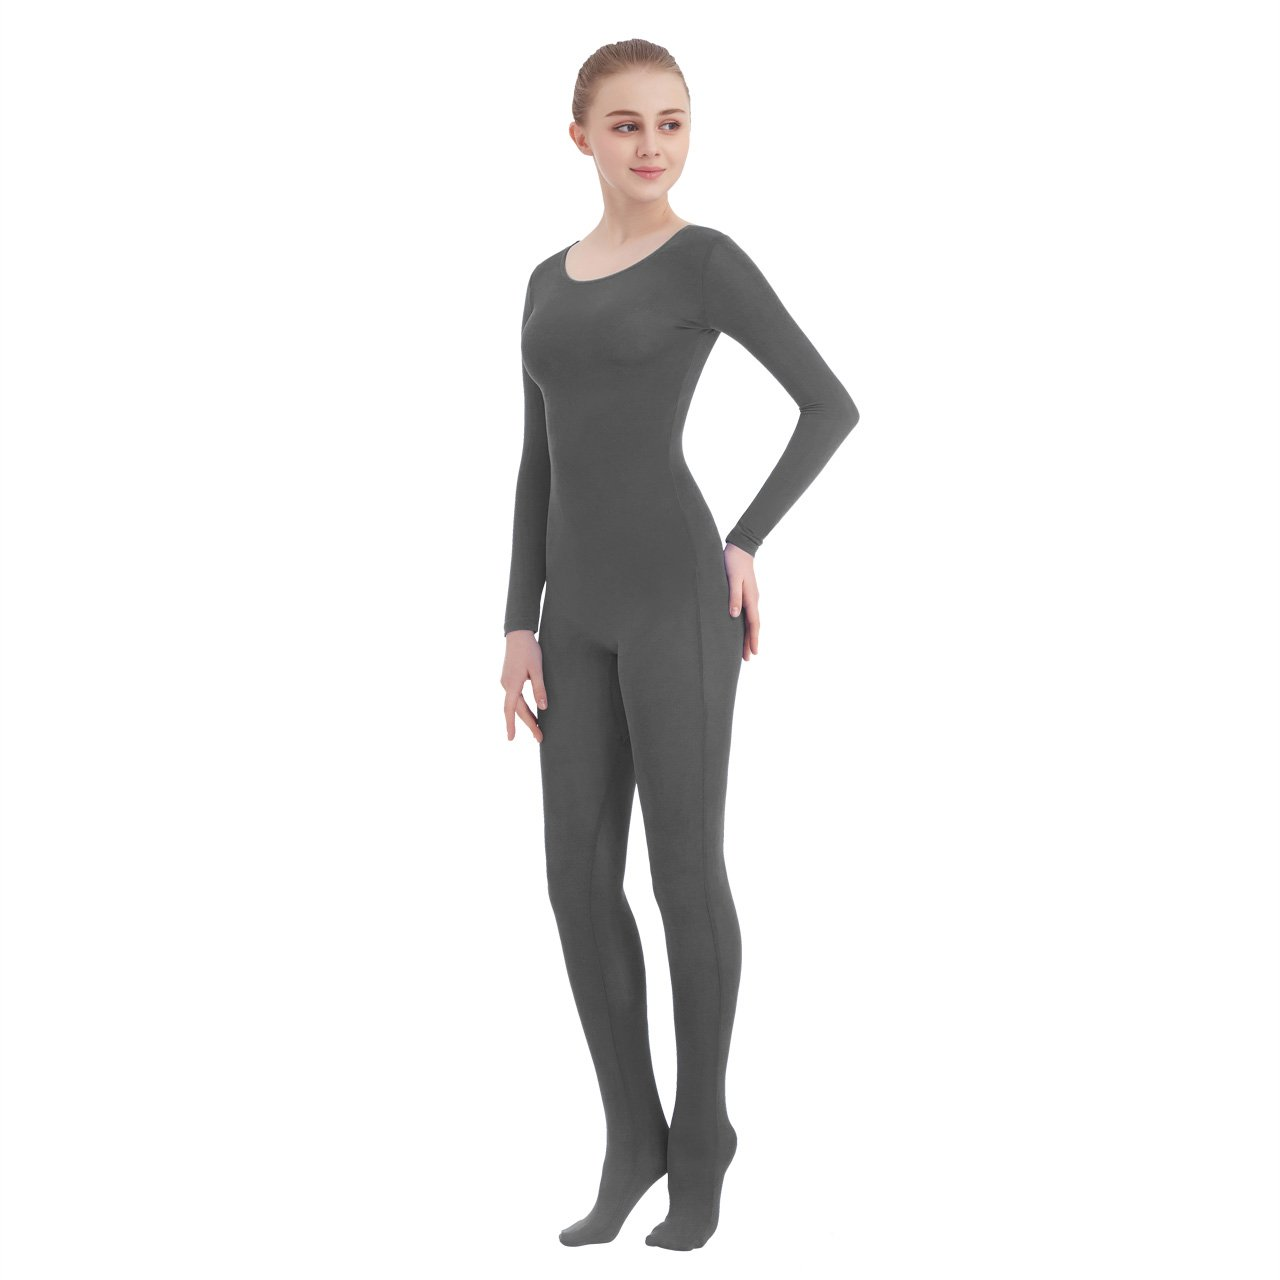 e35354158 Galleon - Unisex Scoop Neck Footed Lycra Spandex Long Sleeve Unitard (X- Large